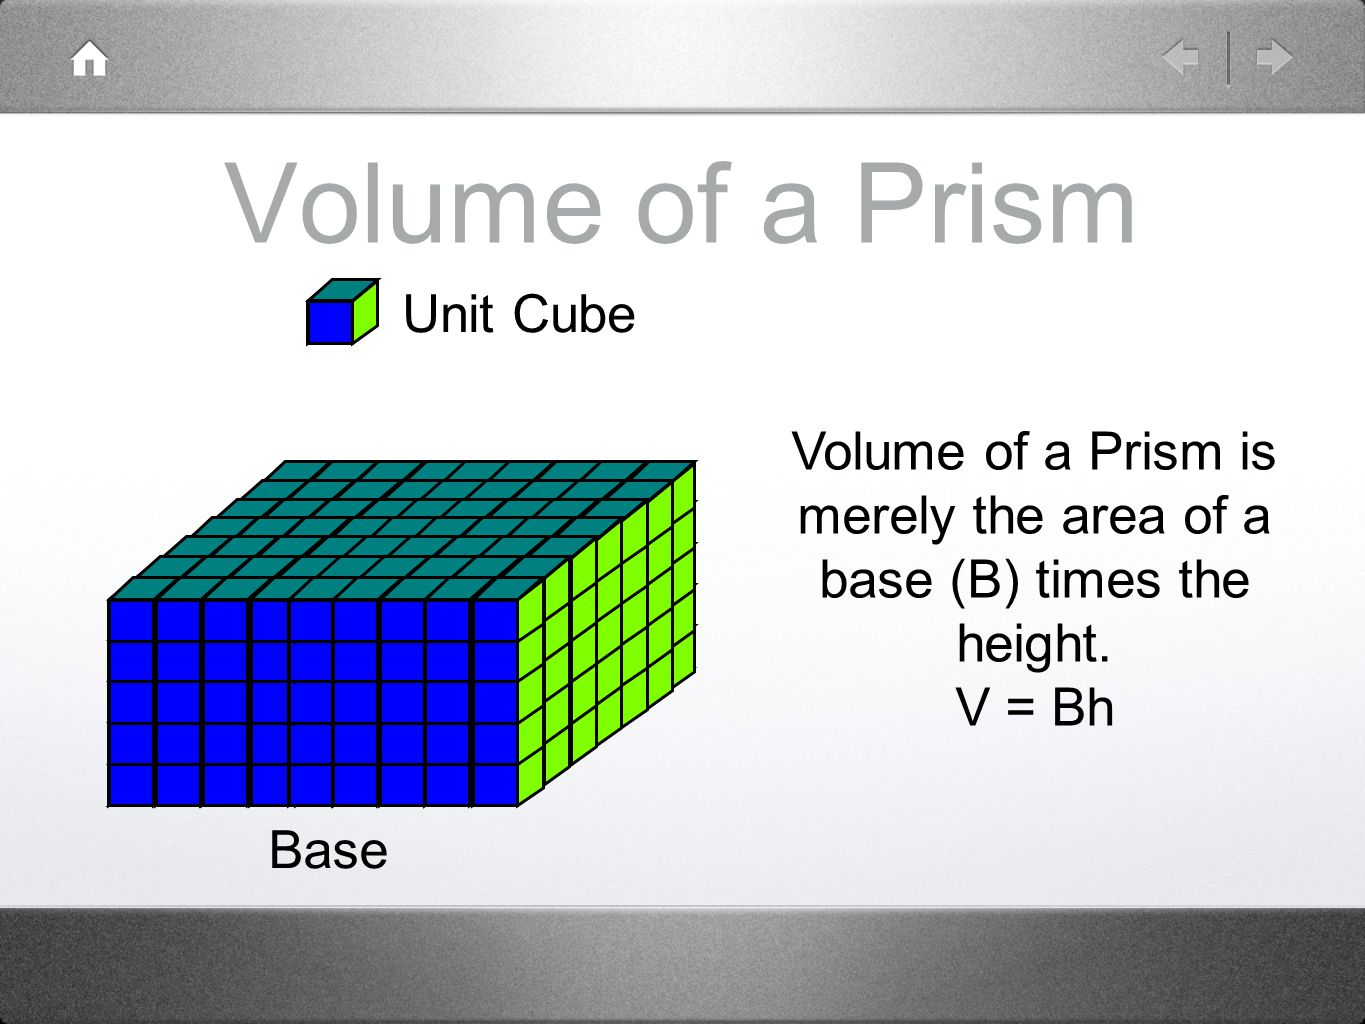 Volume of a Prism is merely the area of a base (B) times the height.